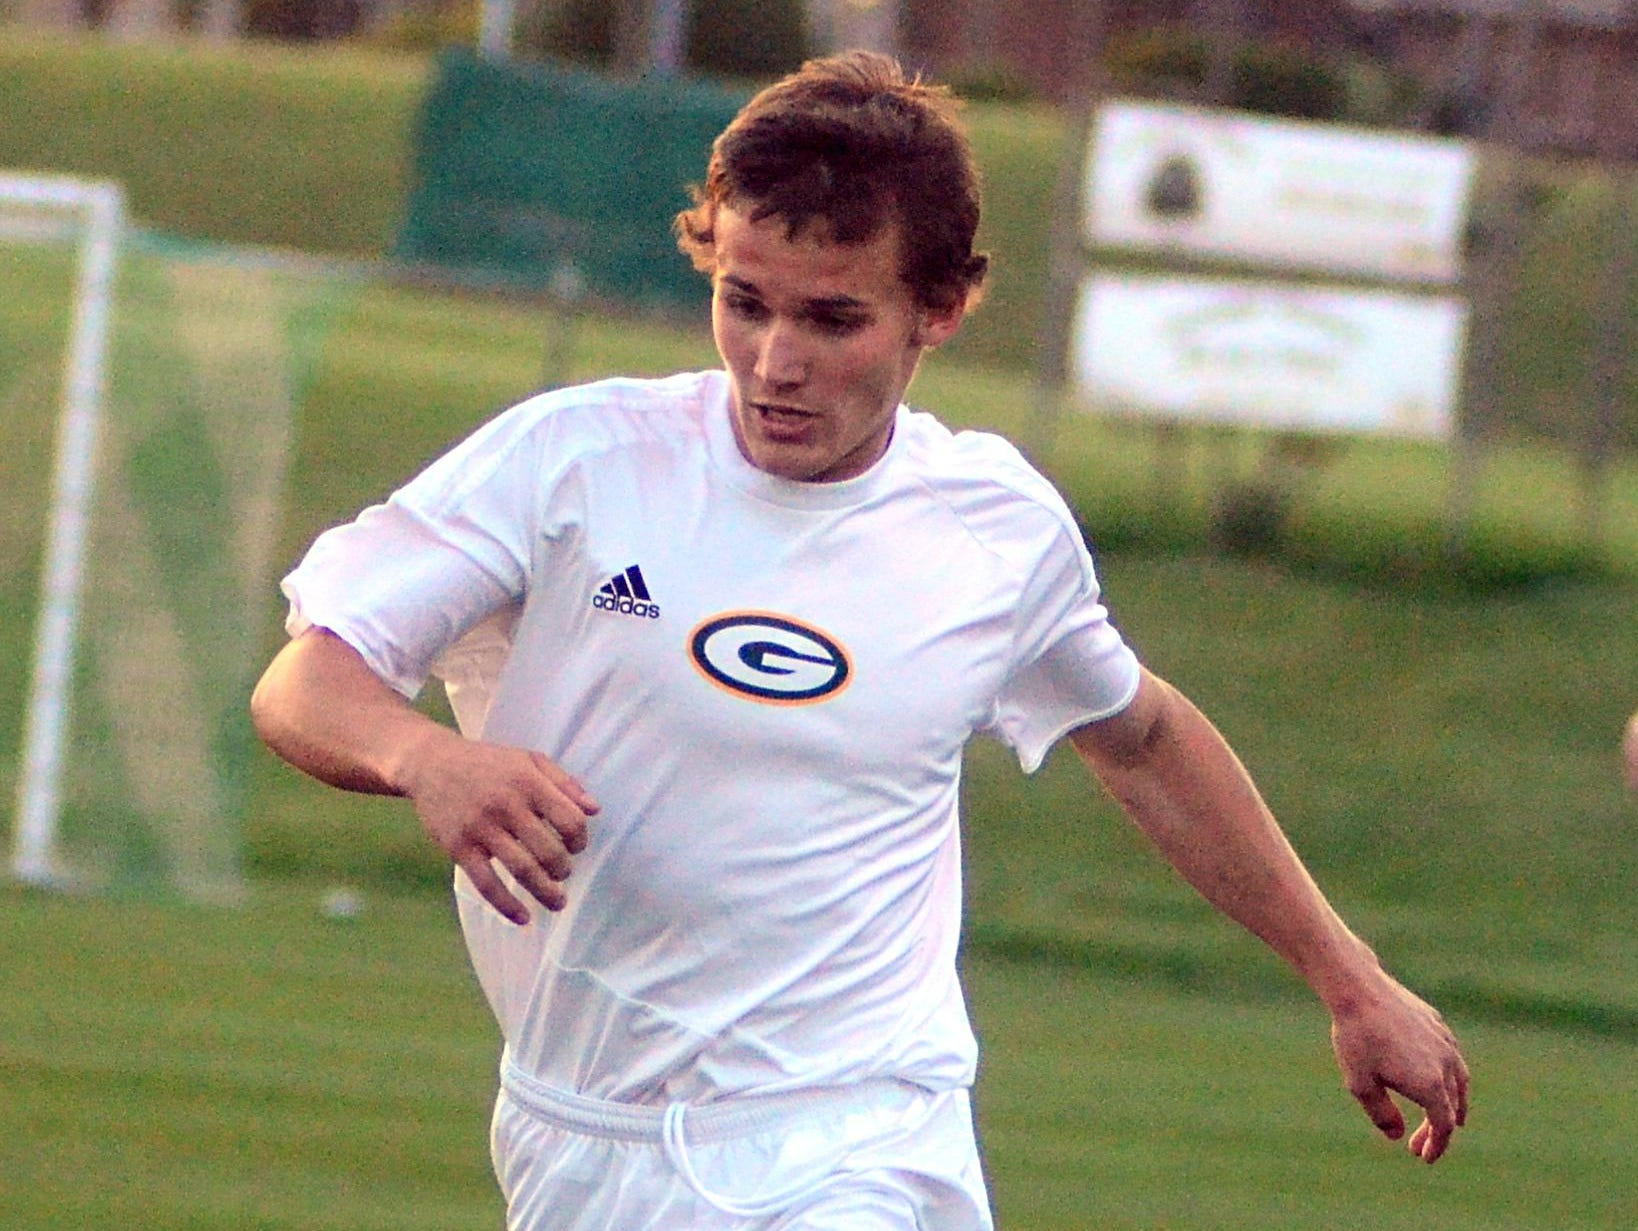 Gallatin High senior Cameron Martin dribbles upfield during first-half action. Martin had an assist in the Green Wave's 3-0 victory on Friday evening.